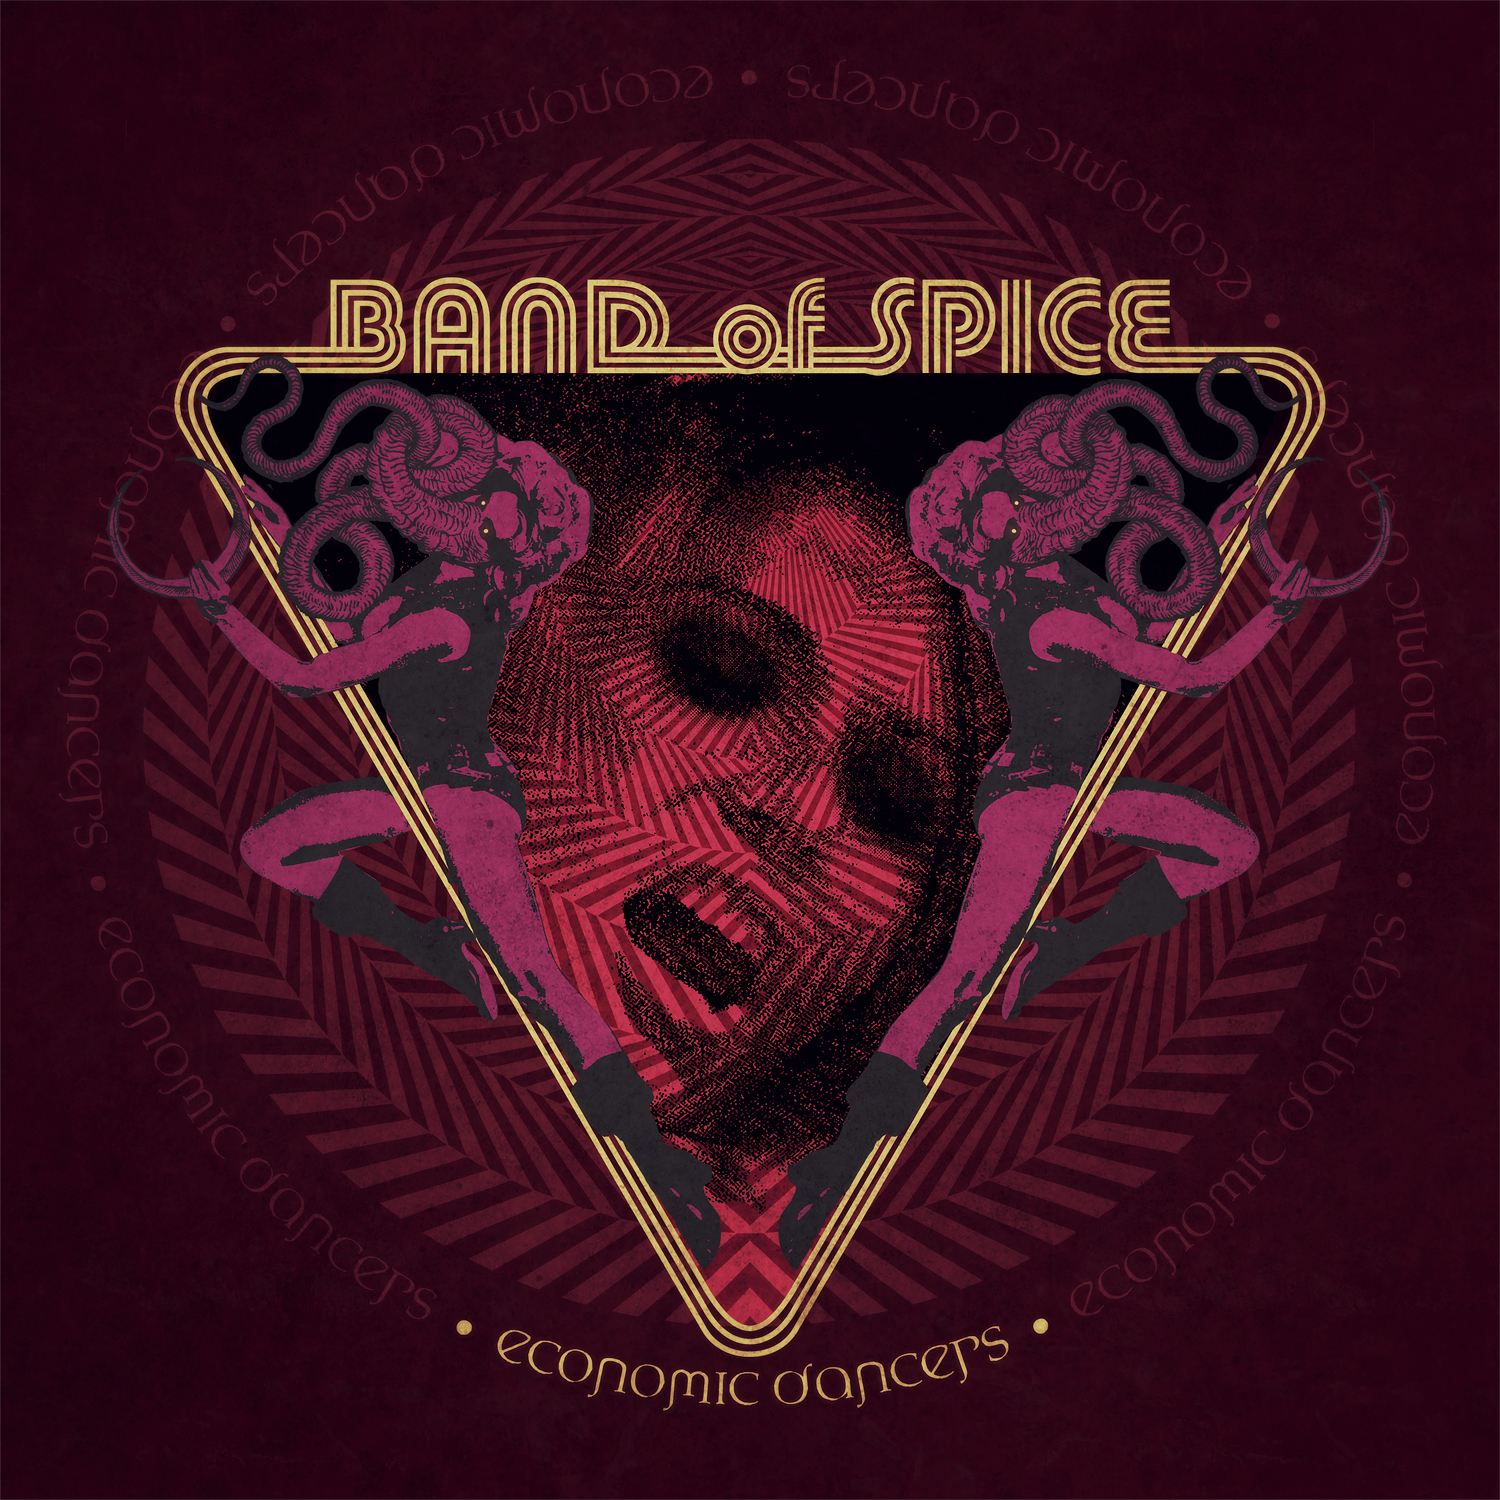 Band of Spice – Economic Dancers Review